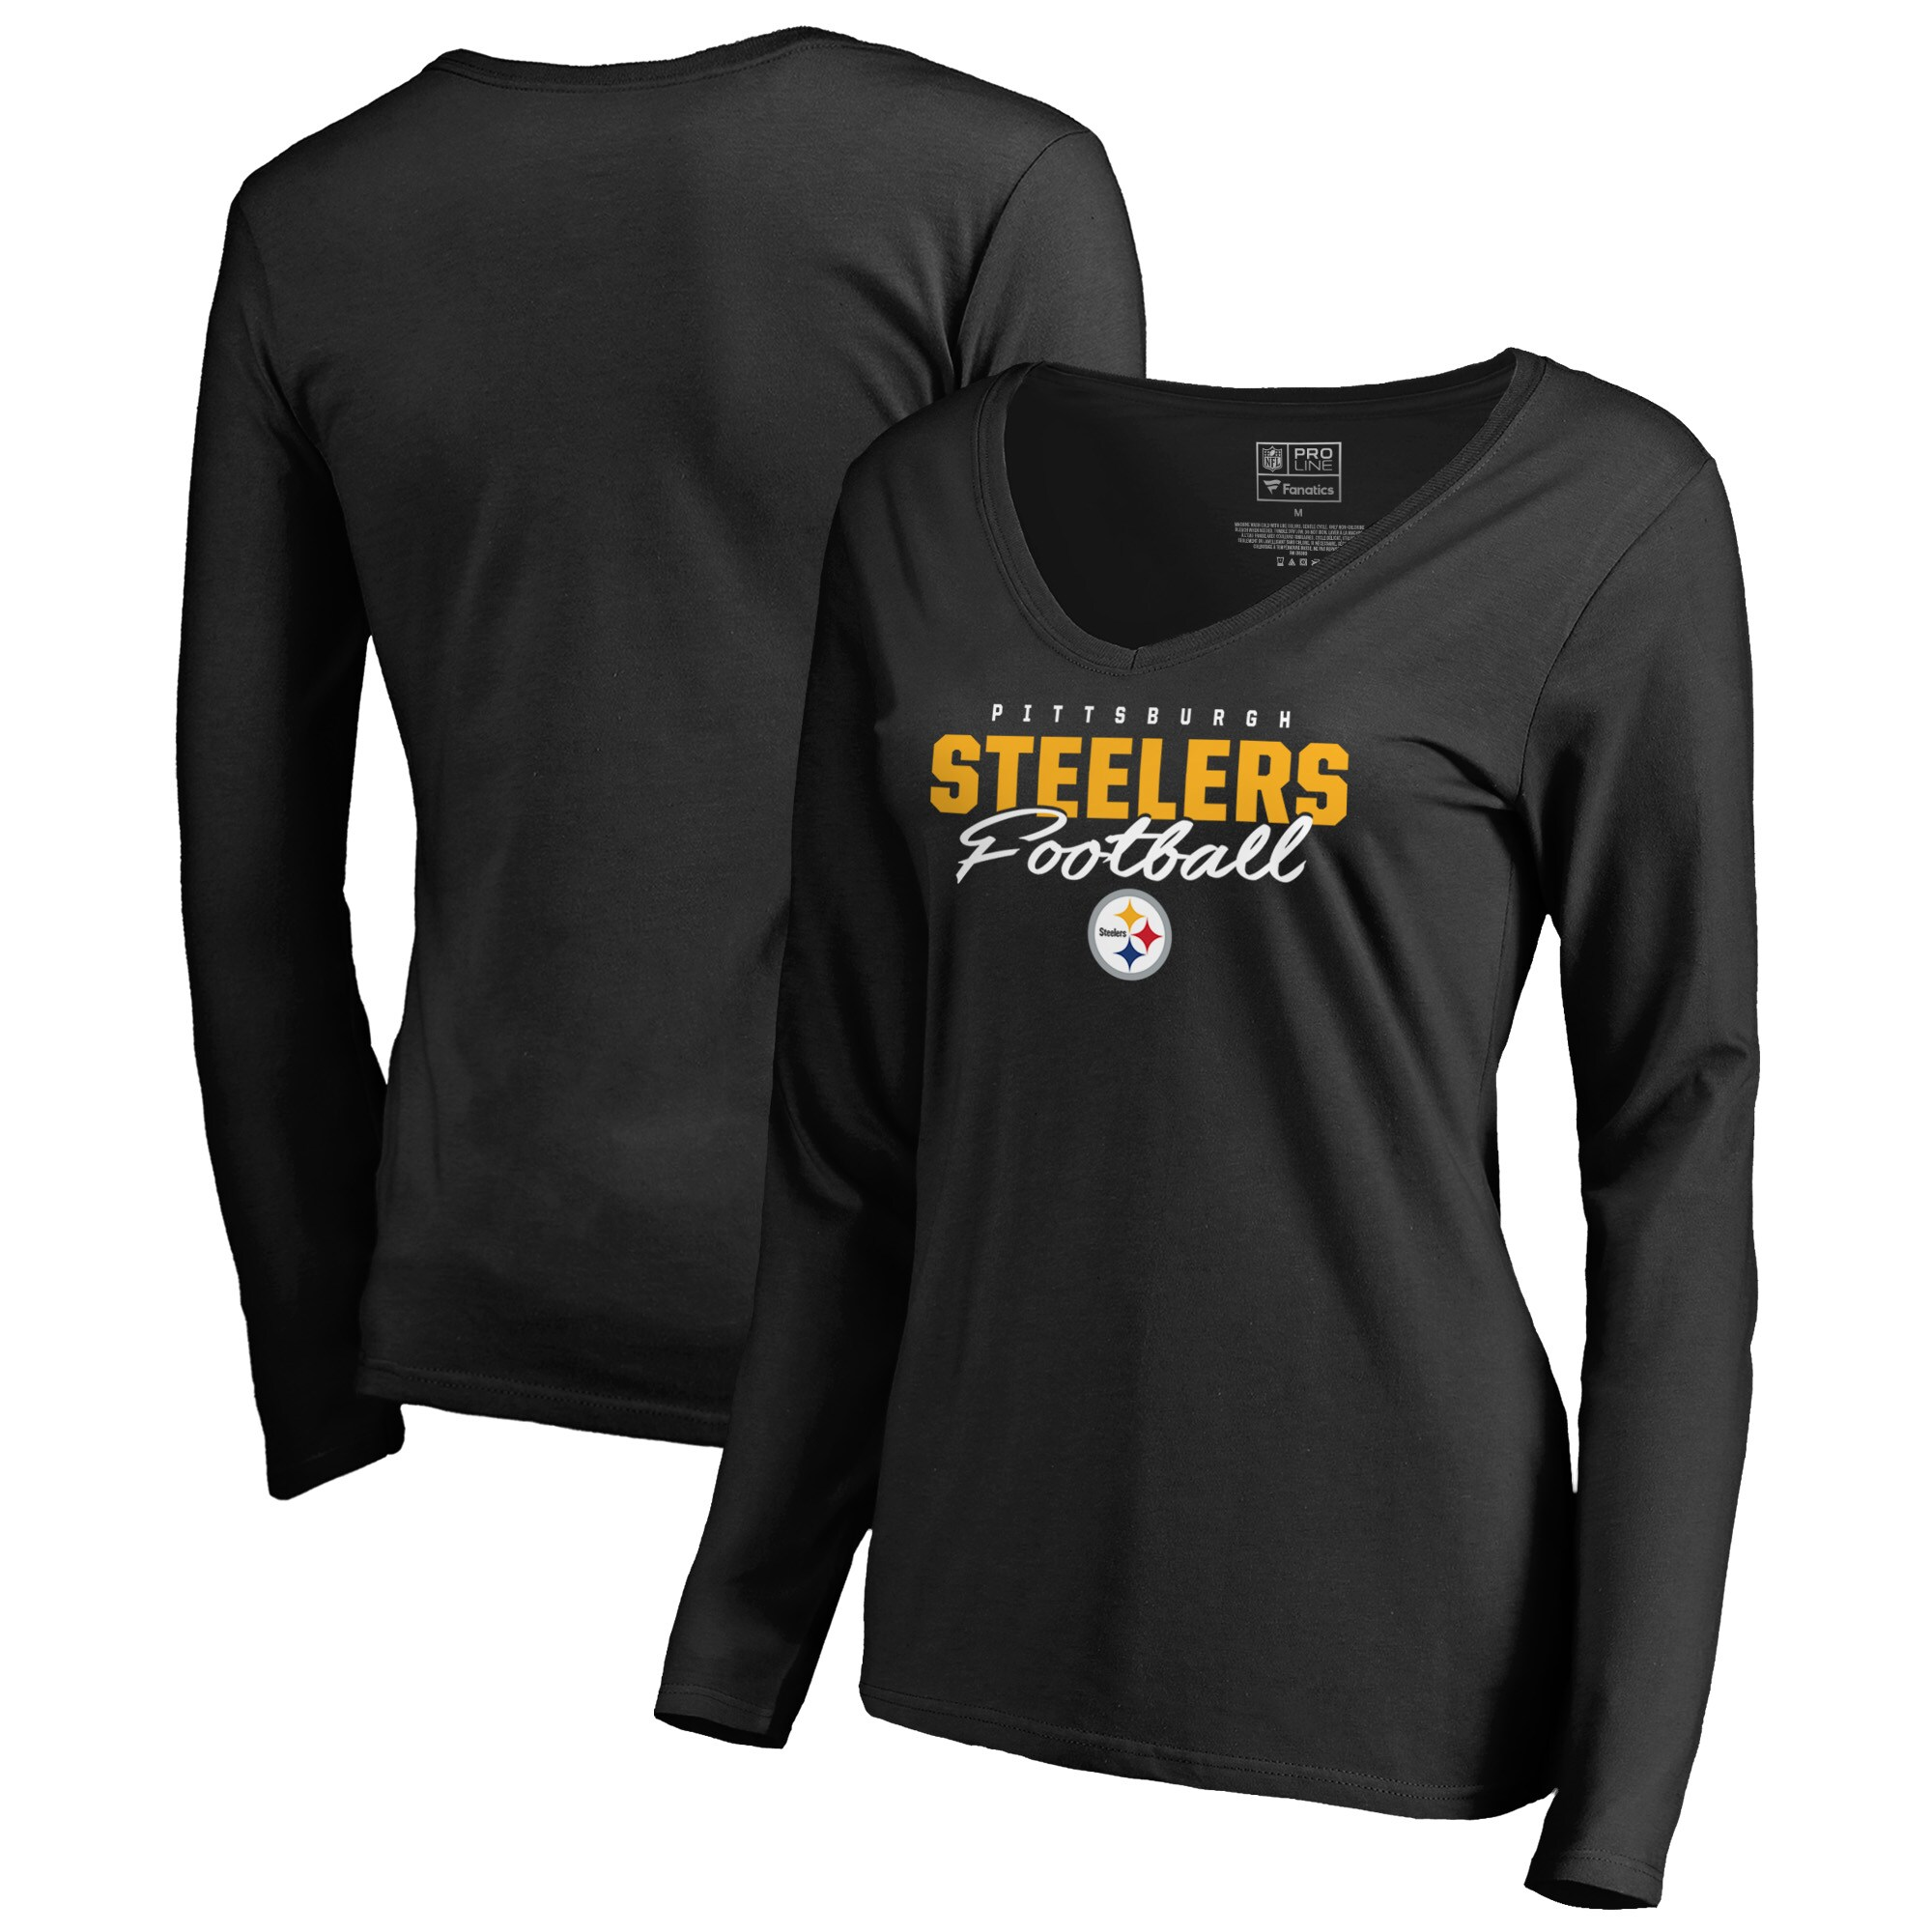 Pittsburgh Steelers NFL Pro Line by Fanatics Branded Women's Iconic Collection Script Assist Long Sleeve V-Neck T-Shirt - Black